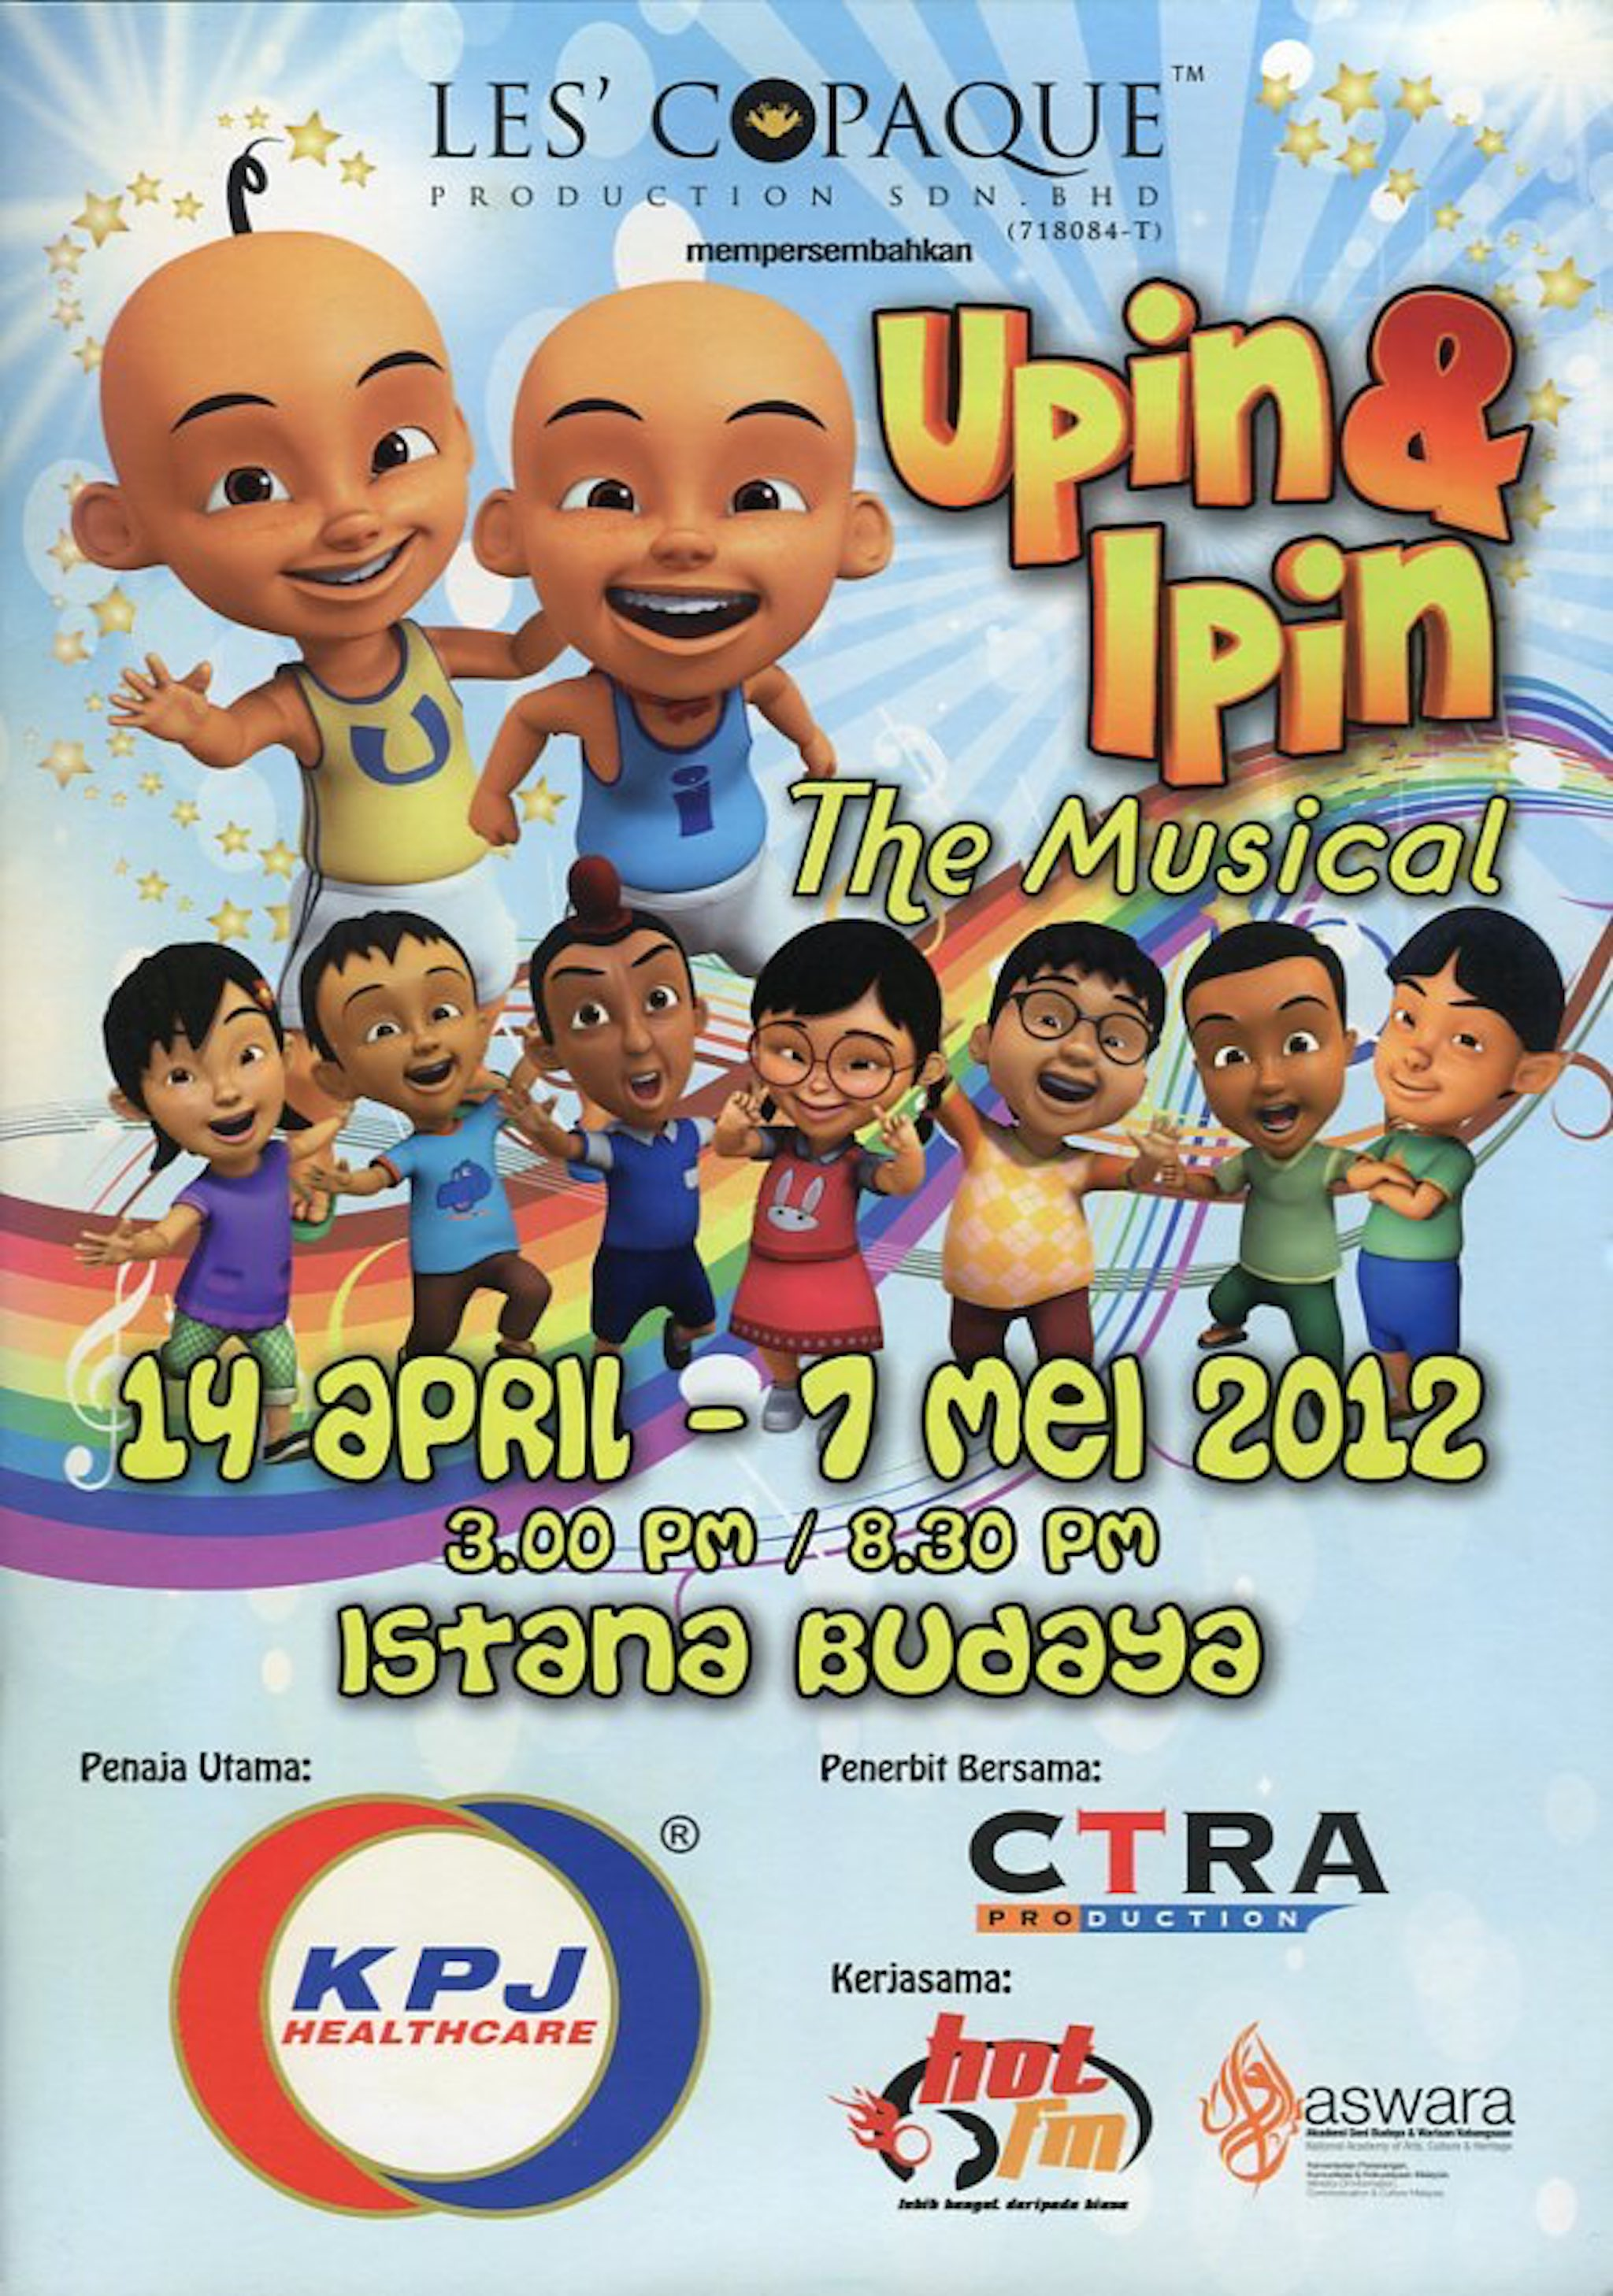 2012 Upin & Ipin The Musical cover